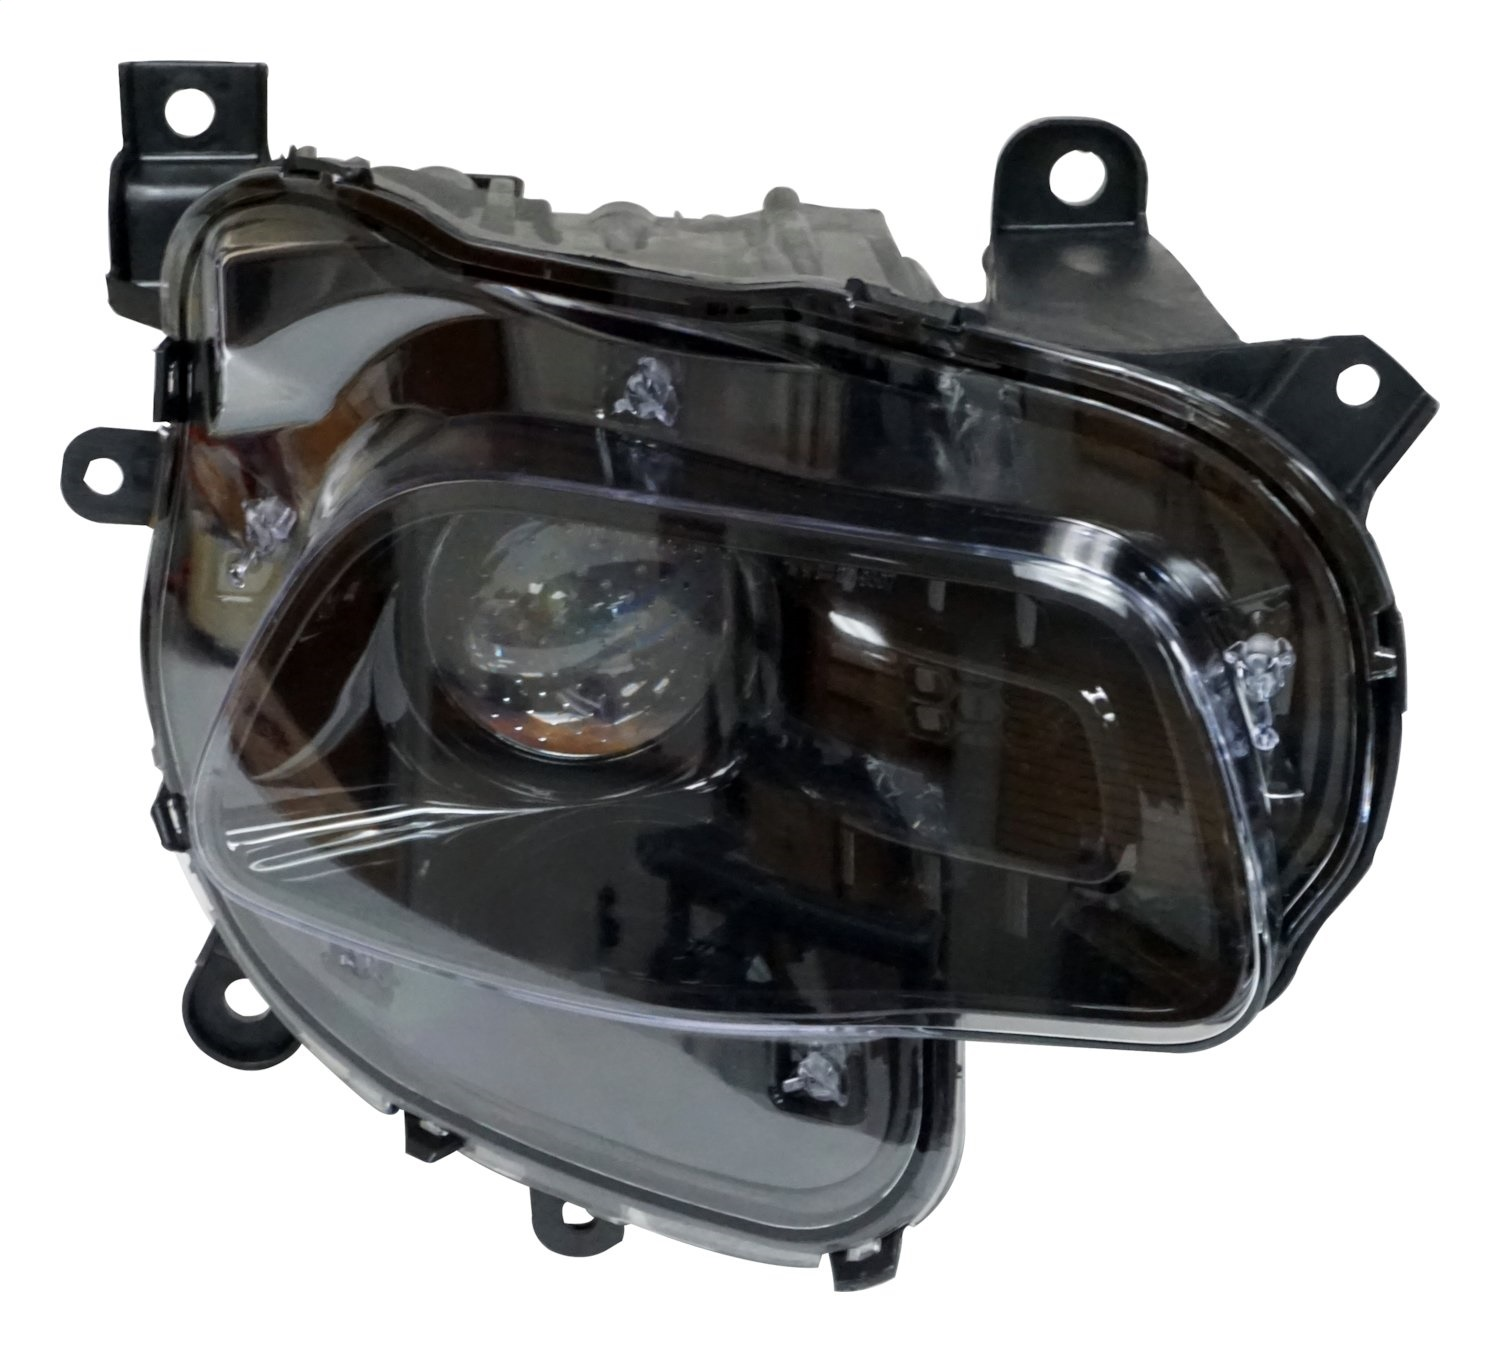 Crown Automotive 68102846AE Head Light Assembly Fits 14-16 Cherokee